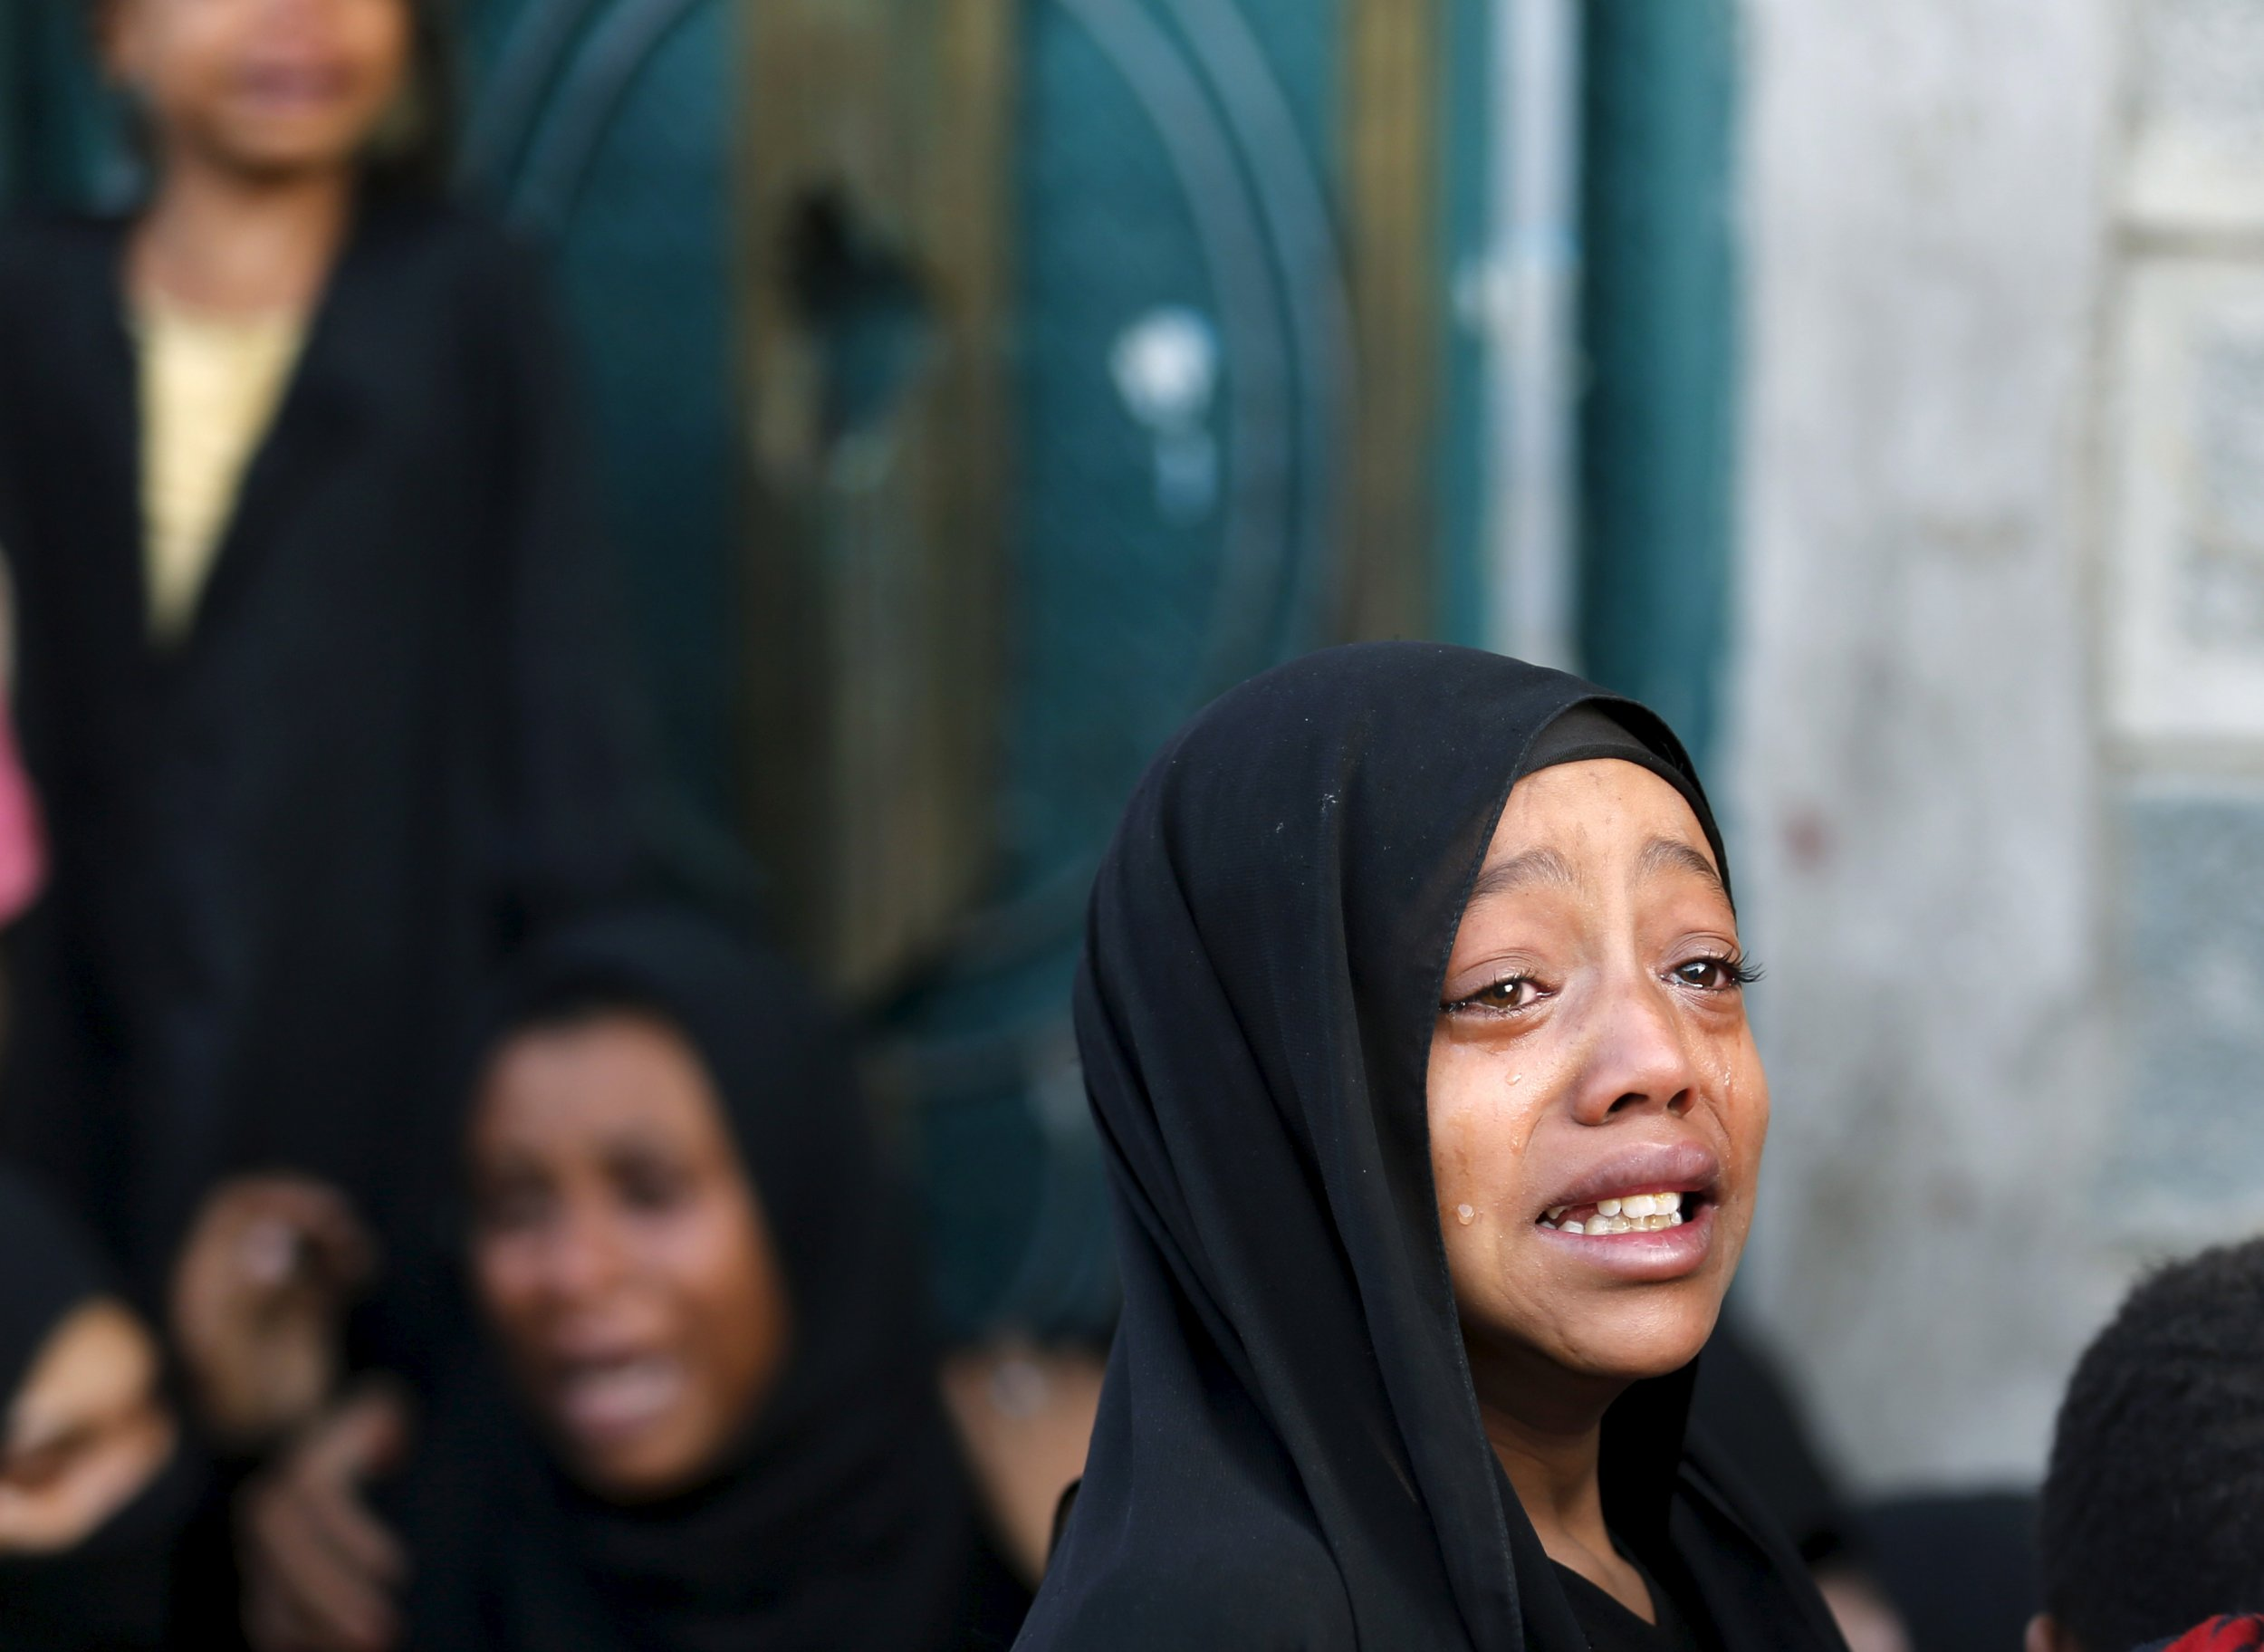 Yemen girl cries over father's death